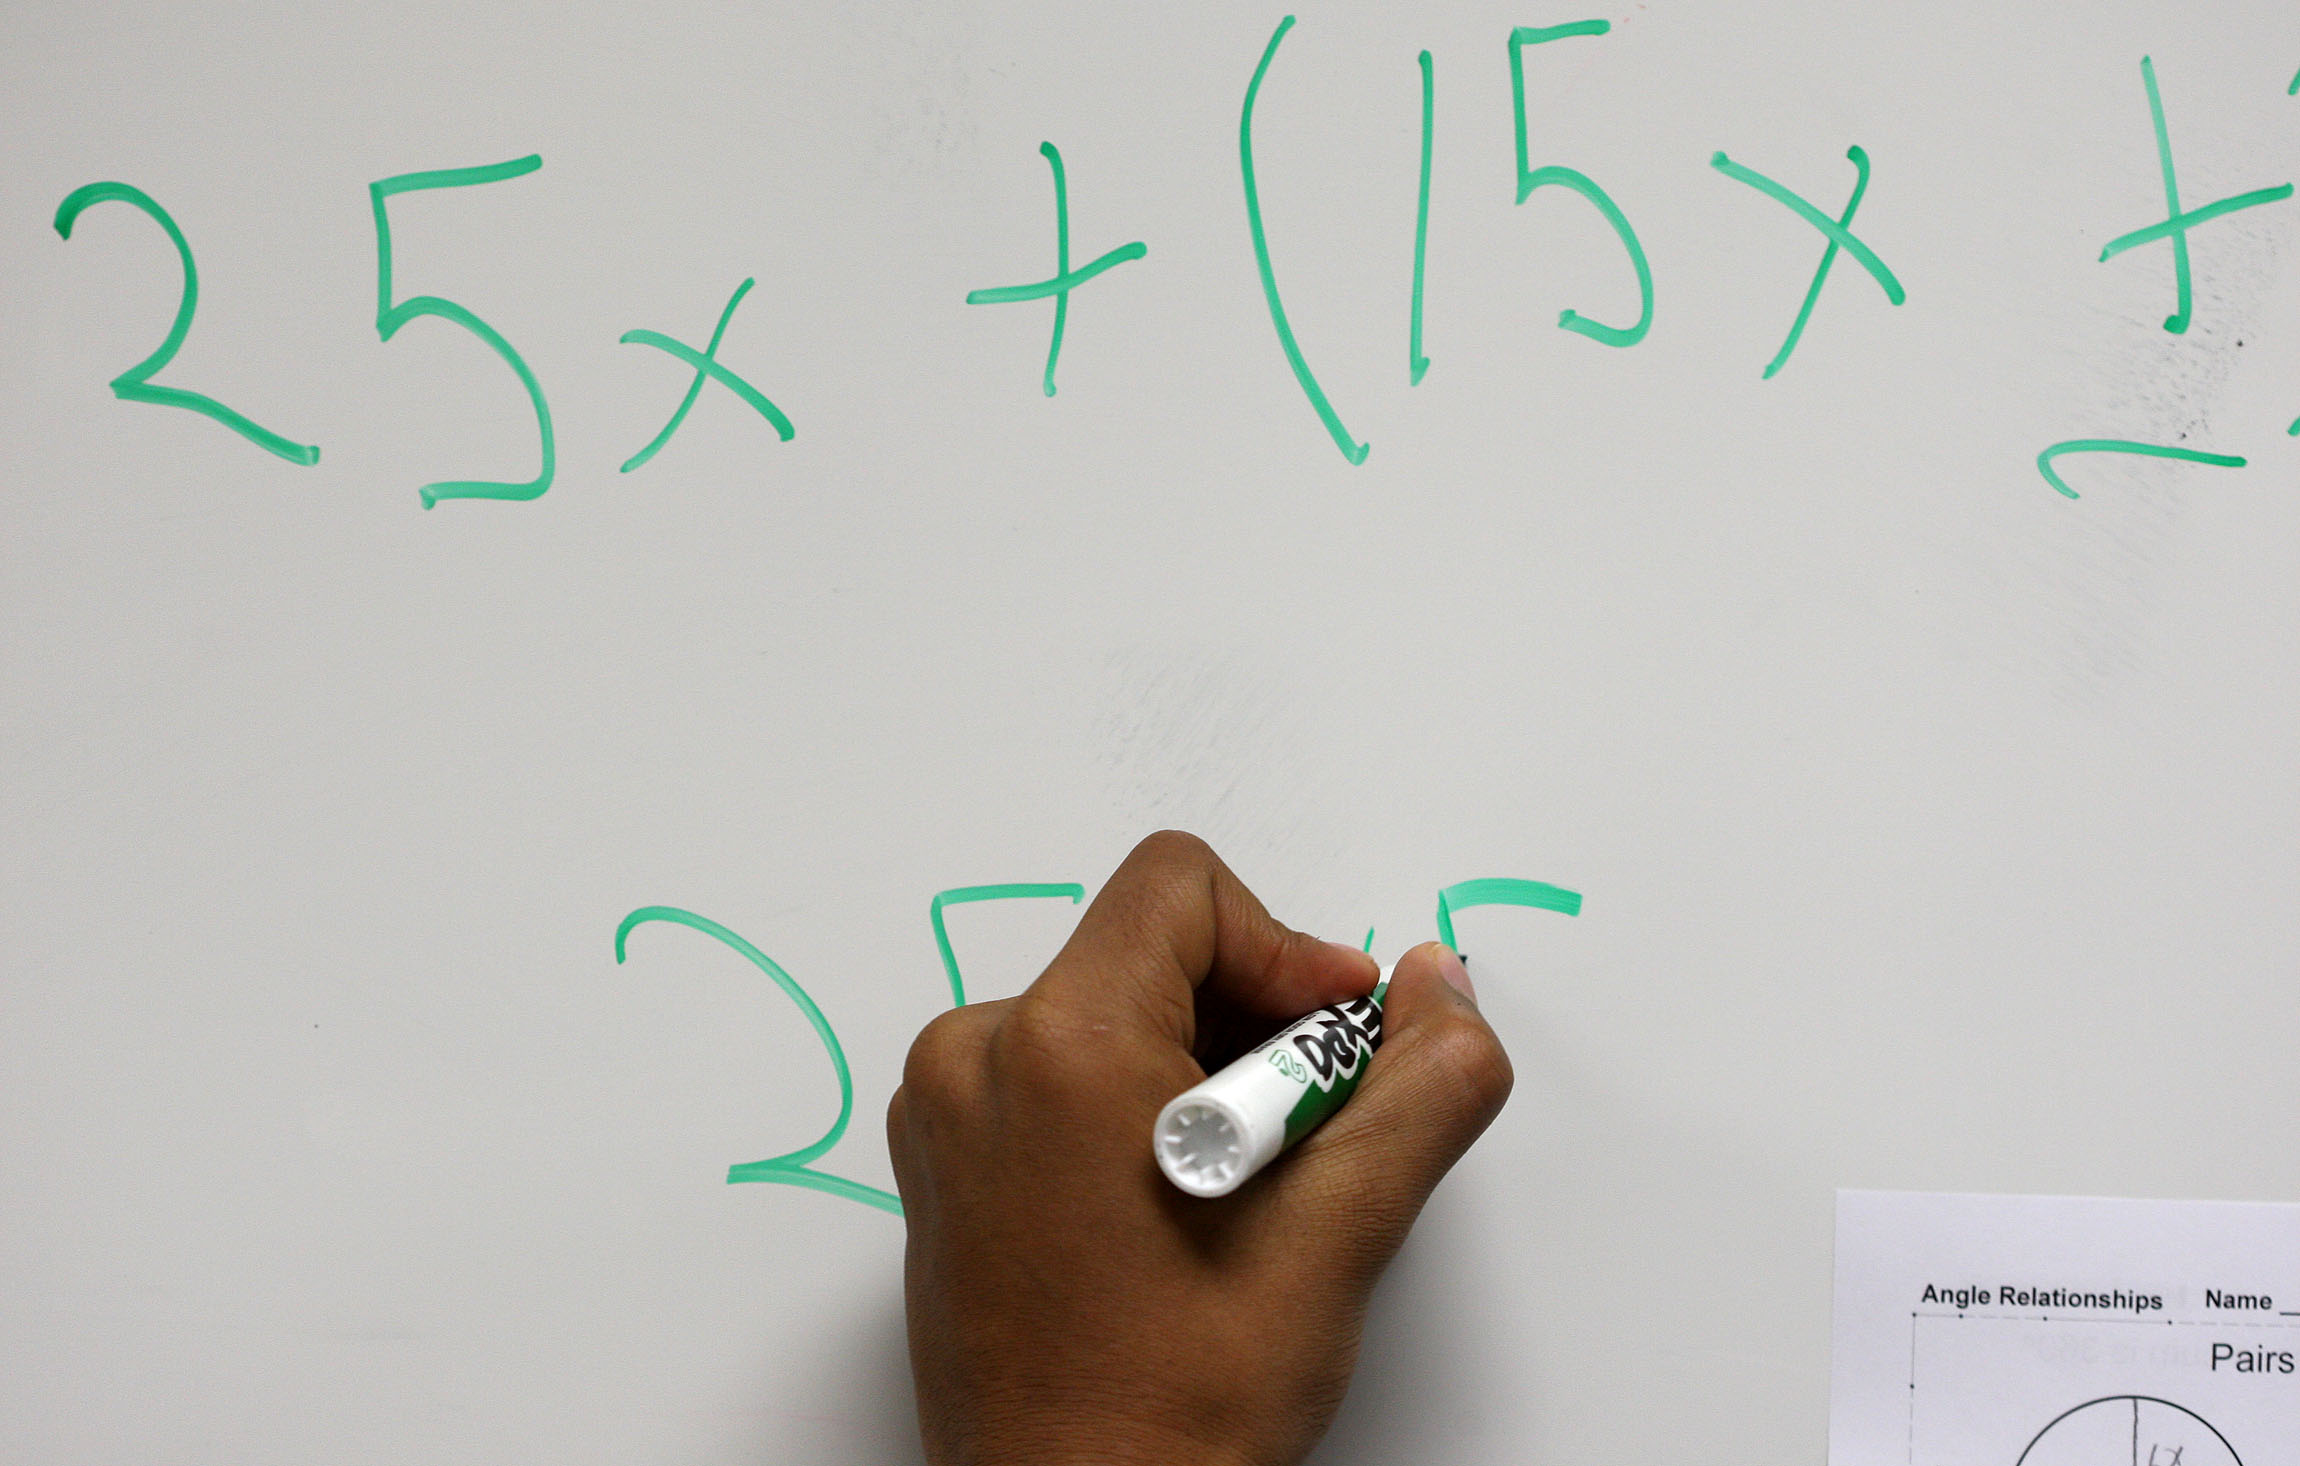 Falling ACT scores: Does U.S. know how to teach math effectively?